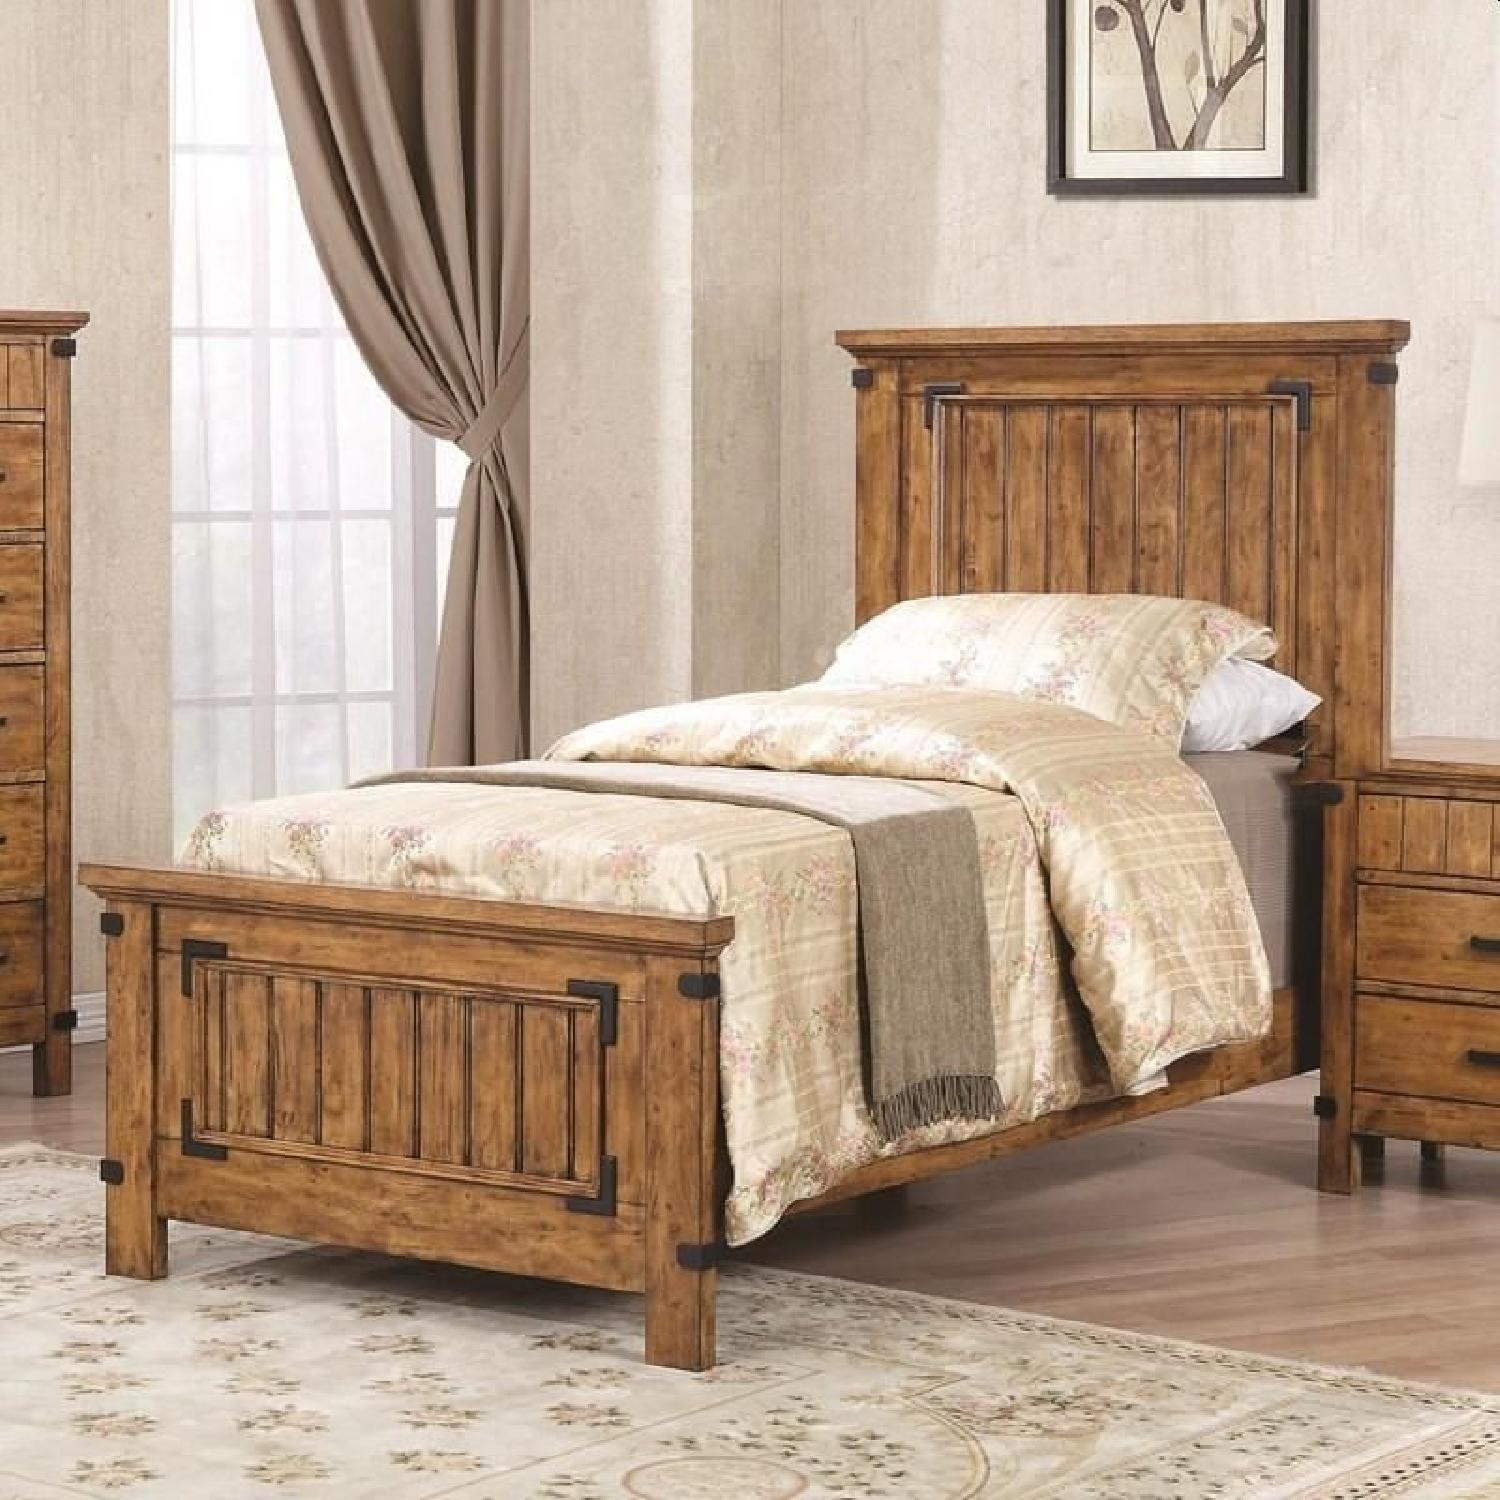 Rustic Style Twin Bed in Warm Honey Brown Finish - image-2